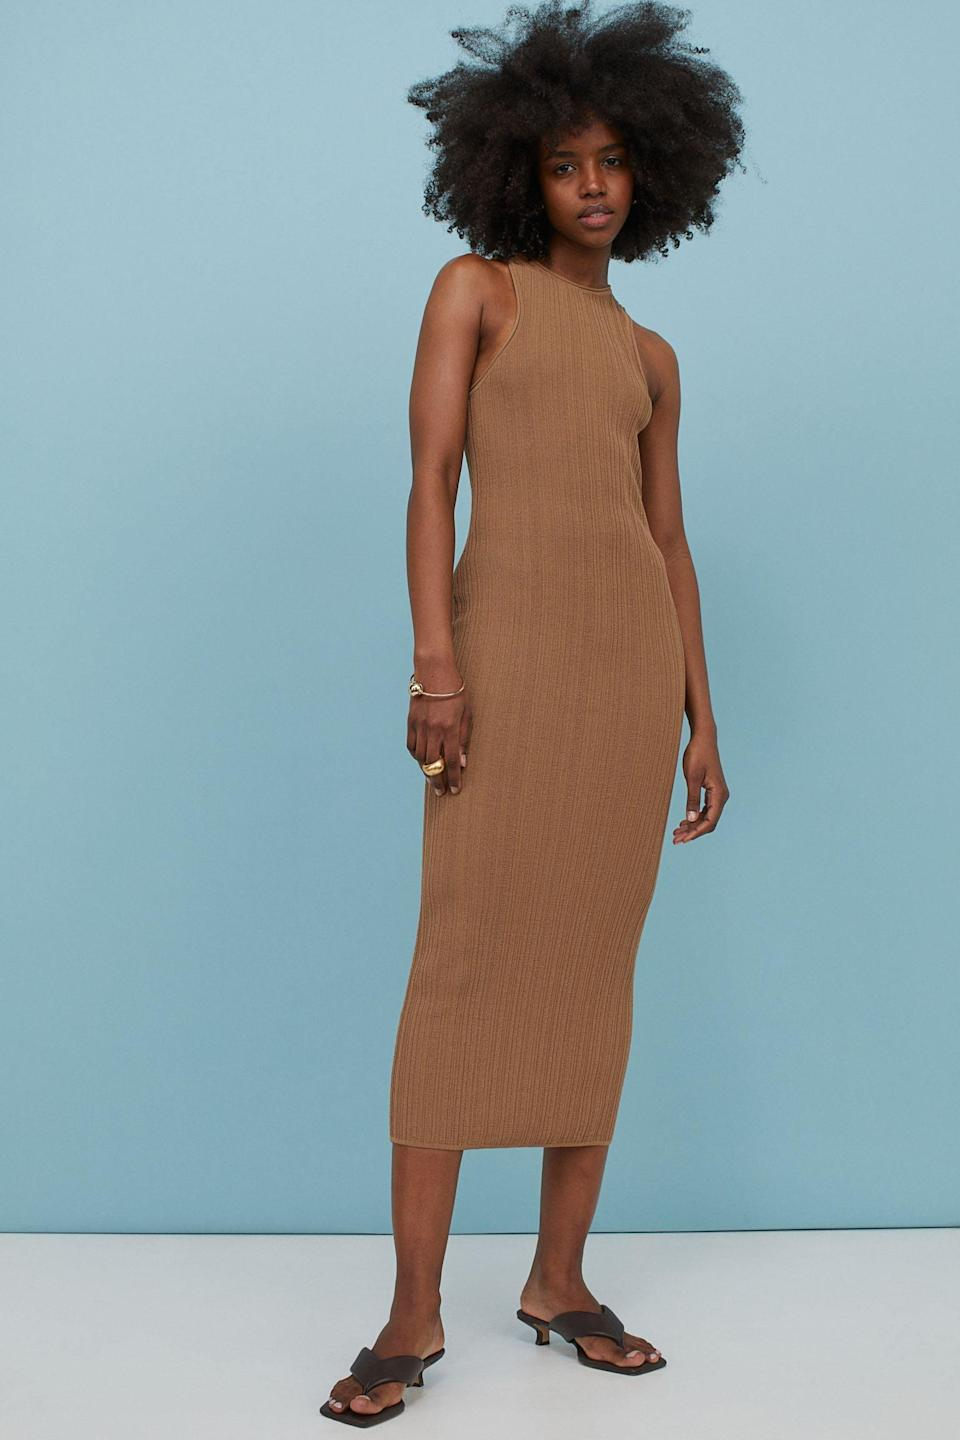 <p>From lounging at home to adventuring in the city, this <span>Rib-knit Dress</span> ($50) can do it all.</p>